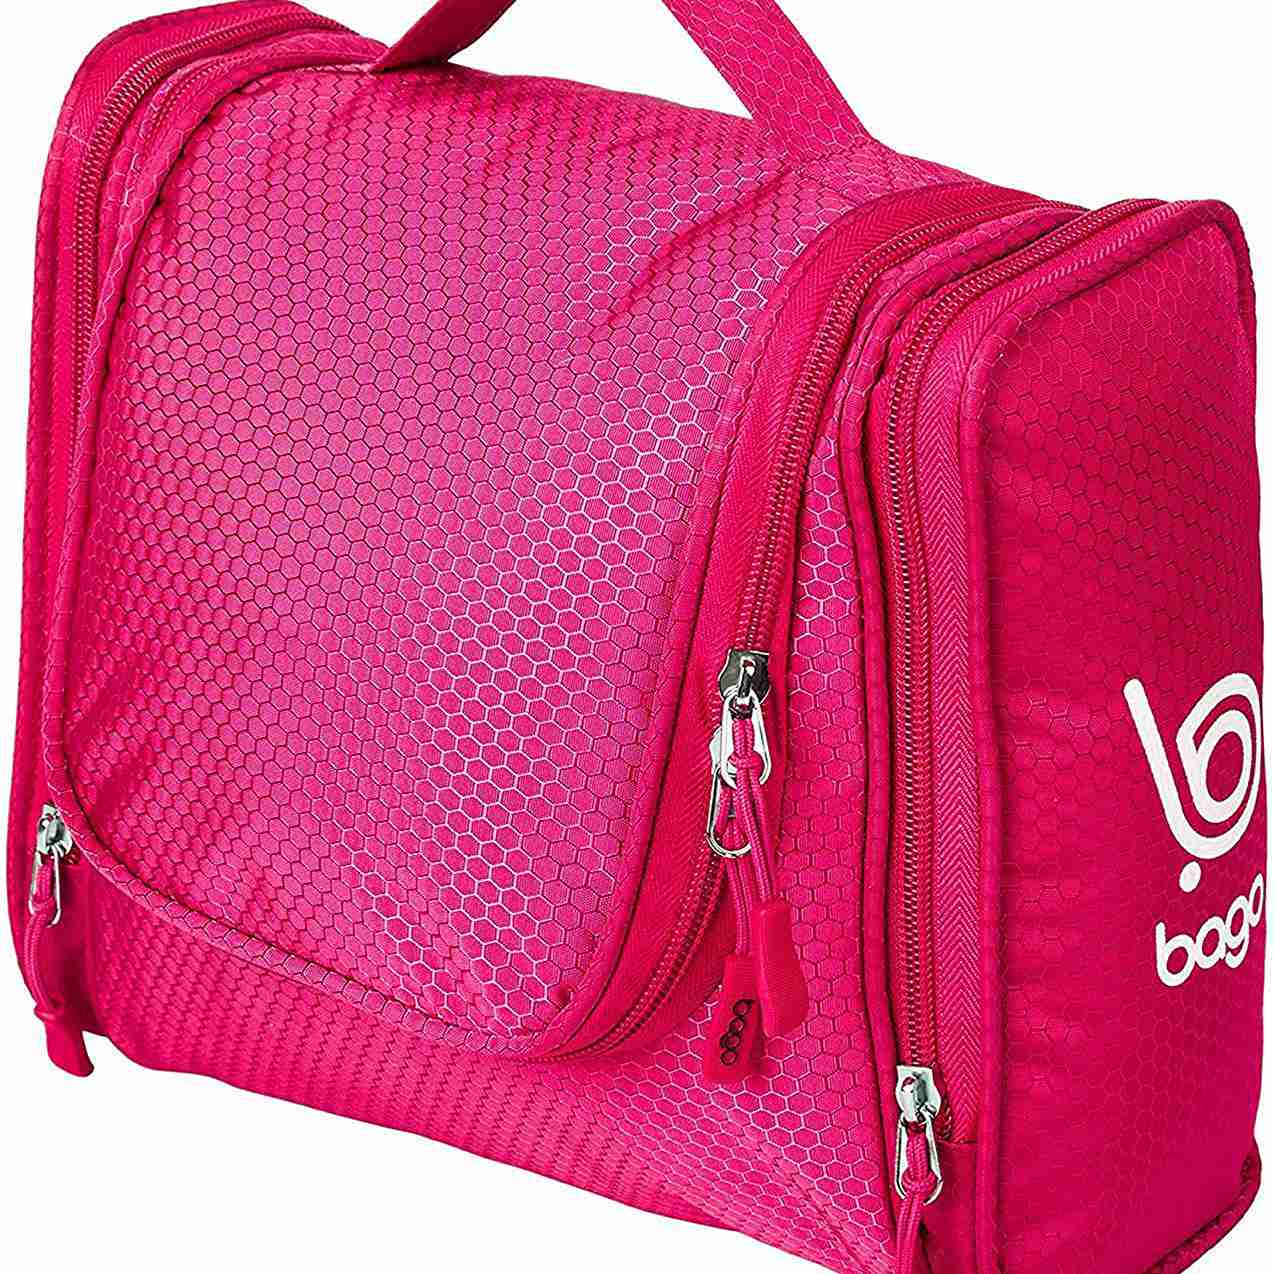 32e1b68751a6 Bago Hanging Toiletry Bag For Men   Women - Toiletries   Shave Travel  Organizer